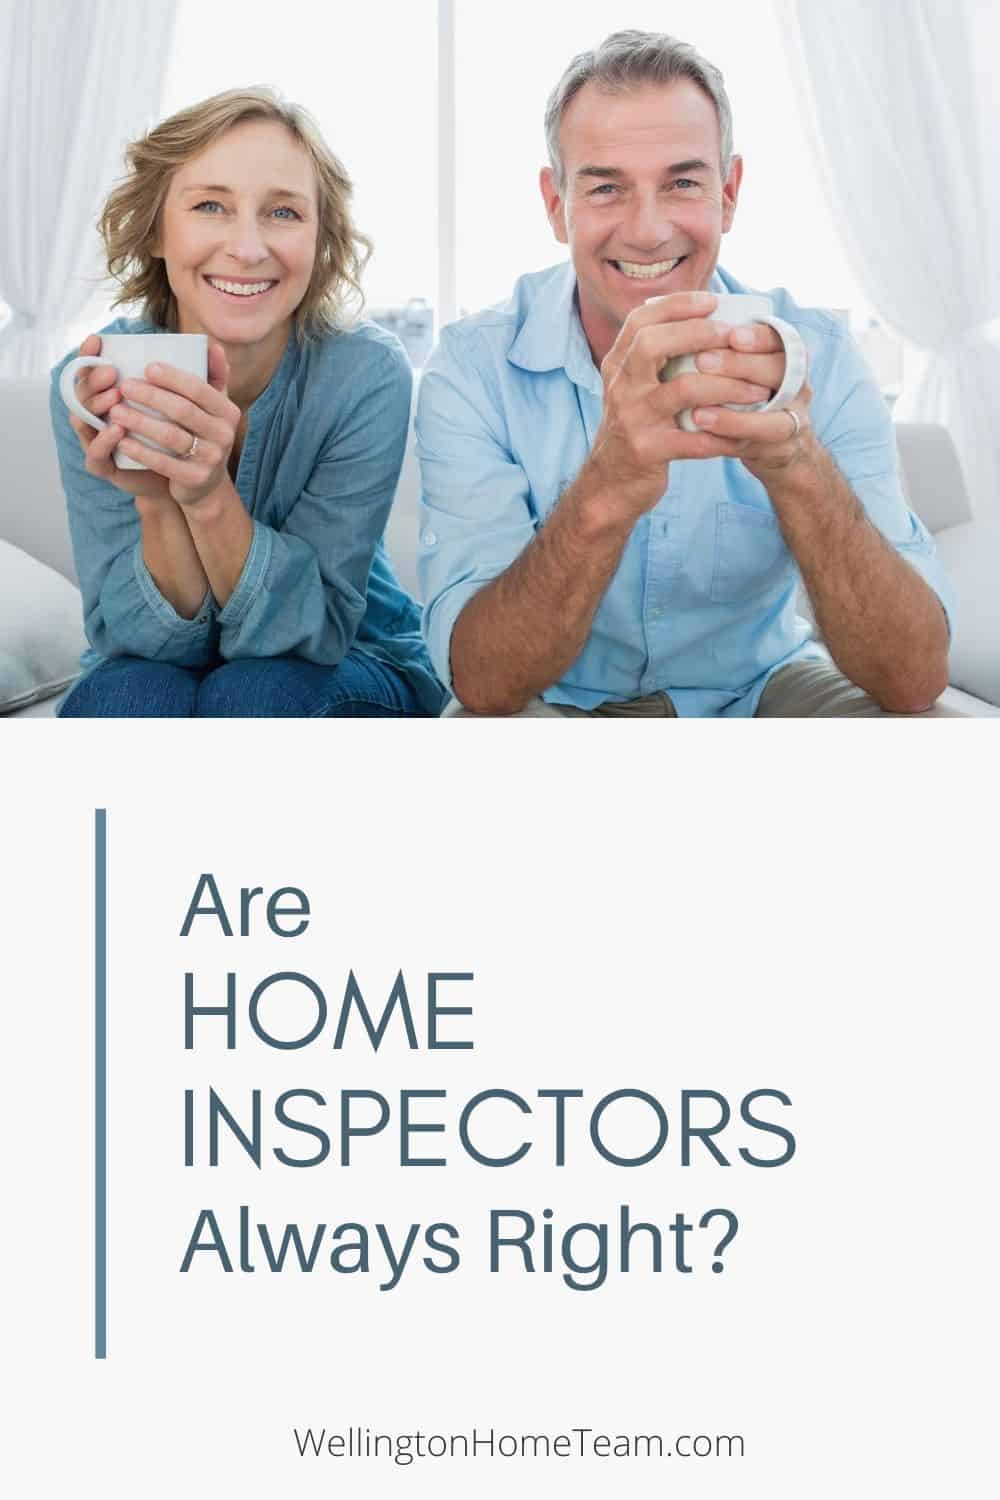 Are Home Inspectors Always Right with Their Findings?